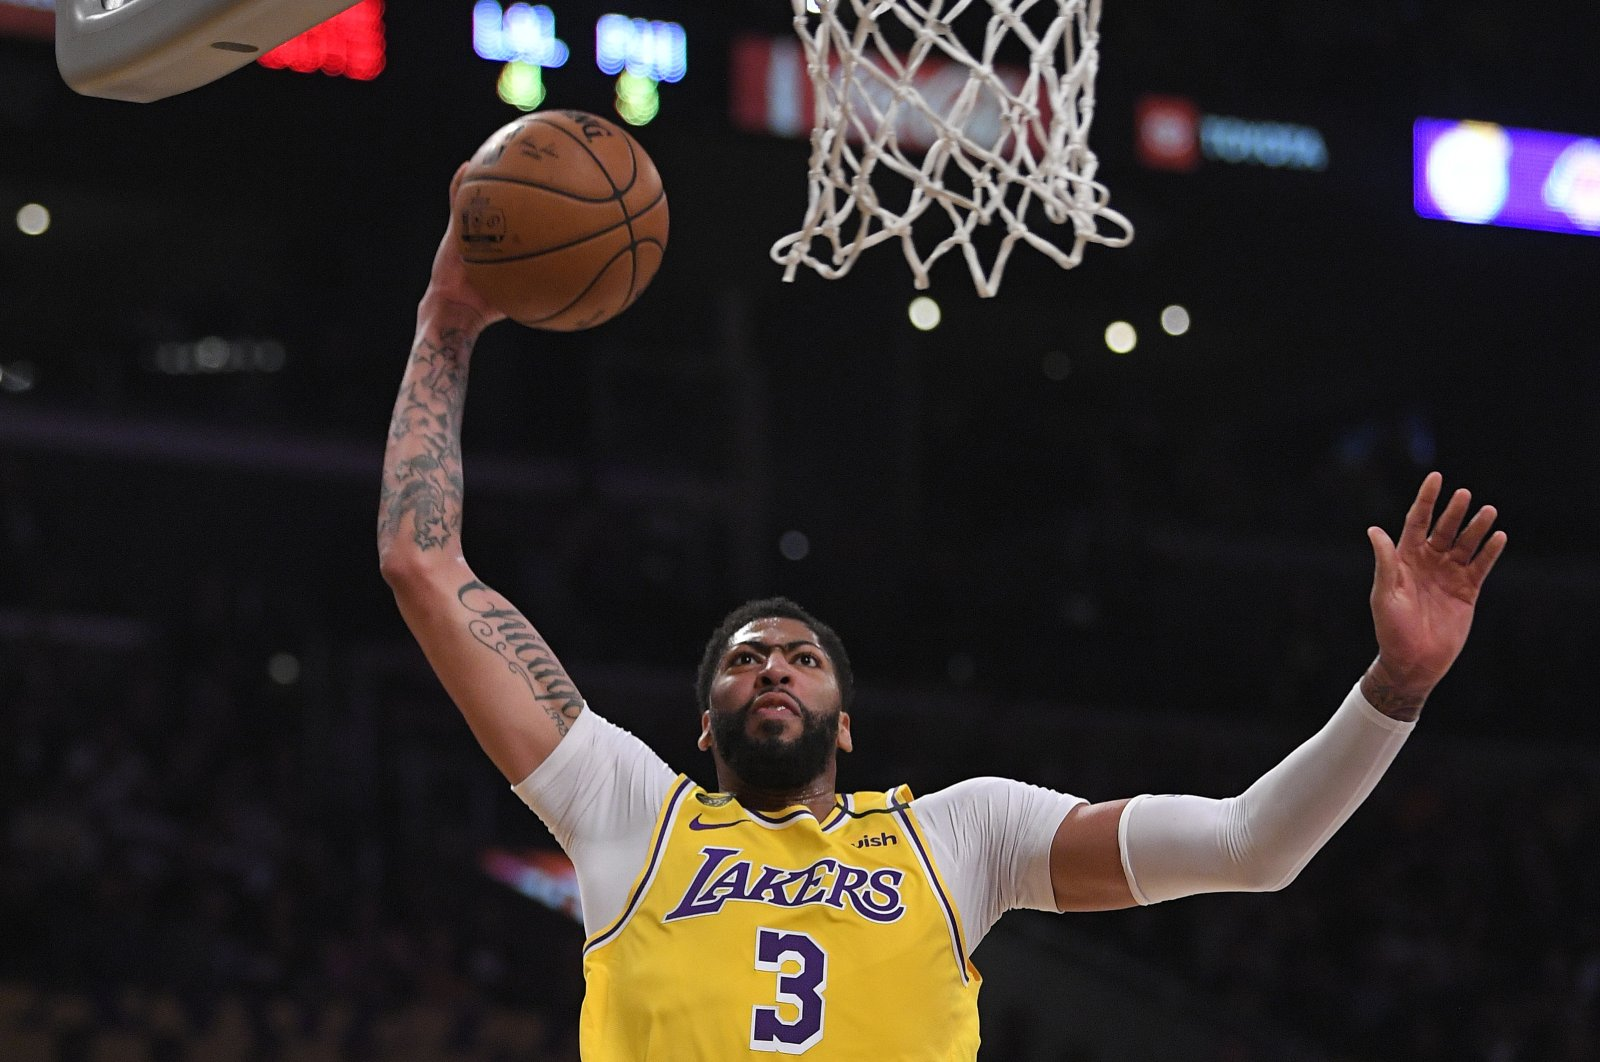 Los Angeles Lakers forward Anthony Davis shoots during an NBA game in Los Angeles, U.S., March 3, 2020. (AP Photo)